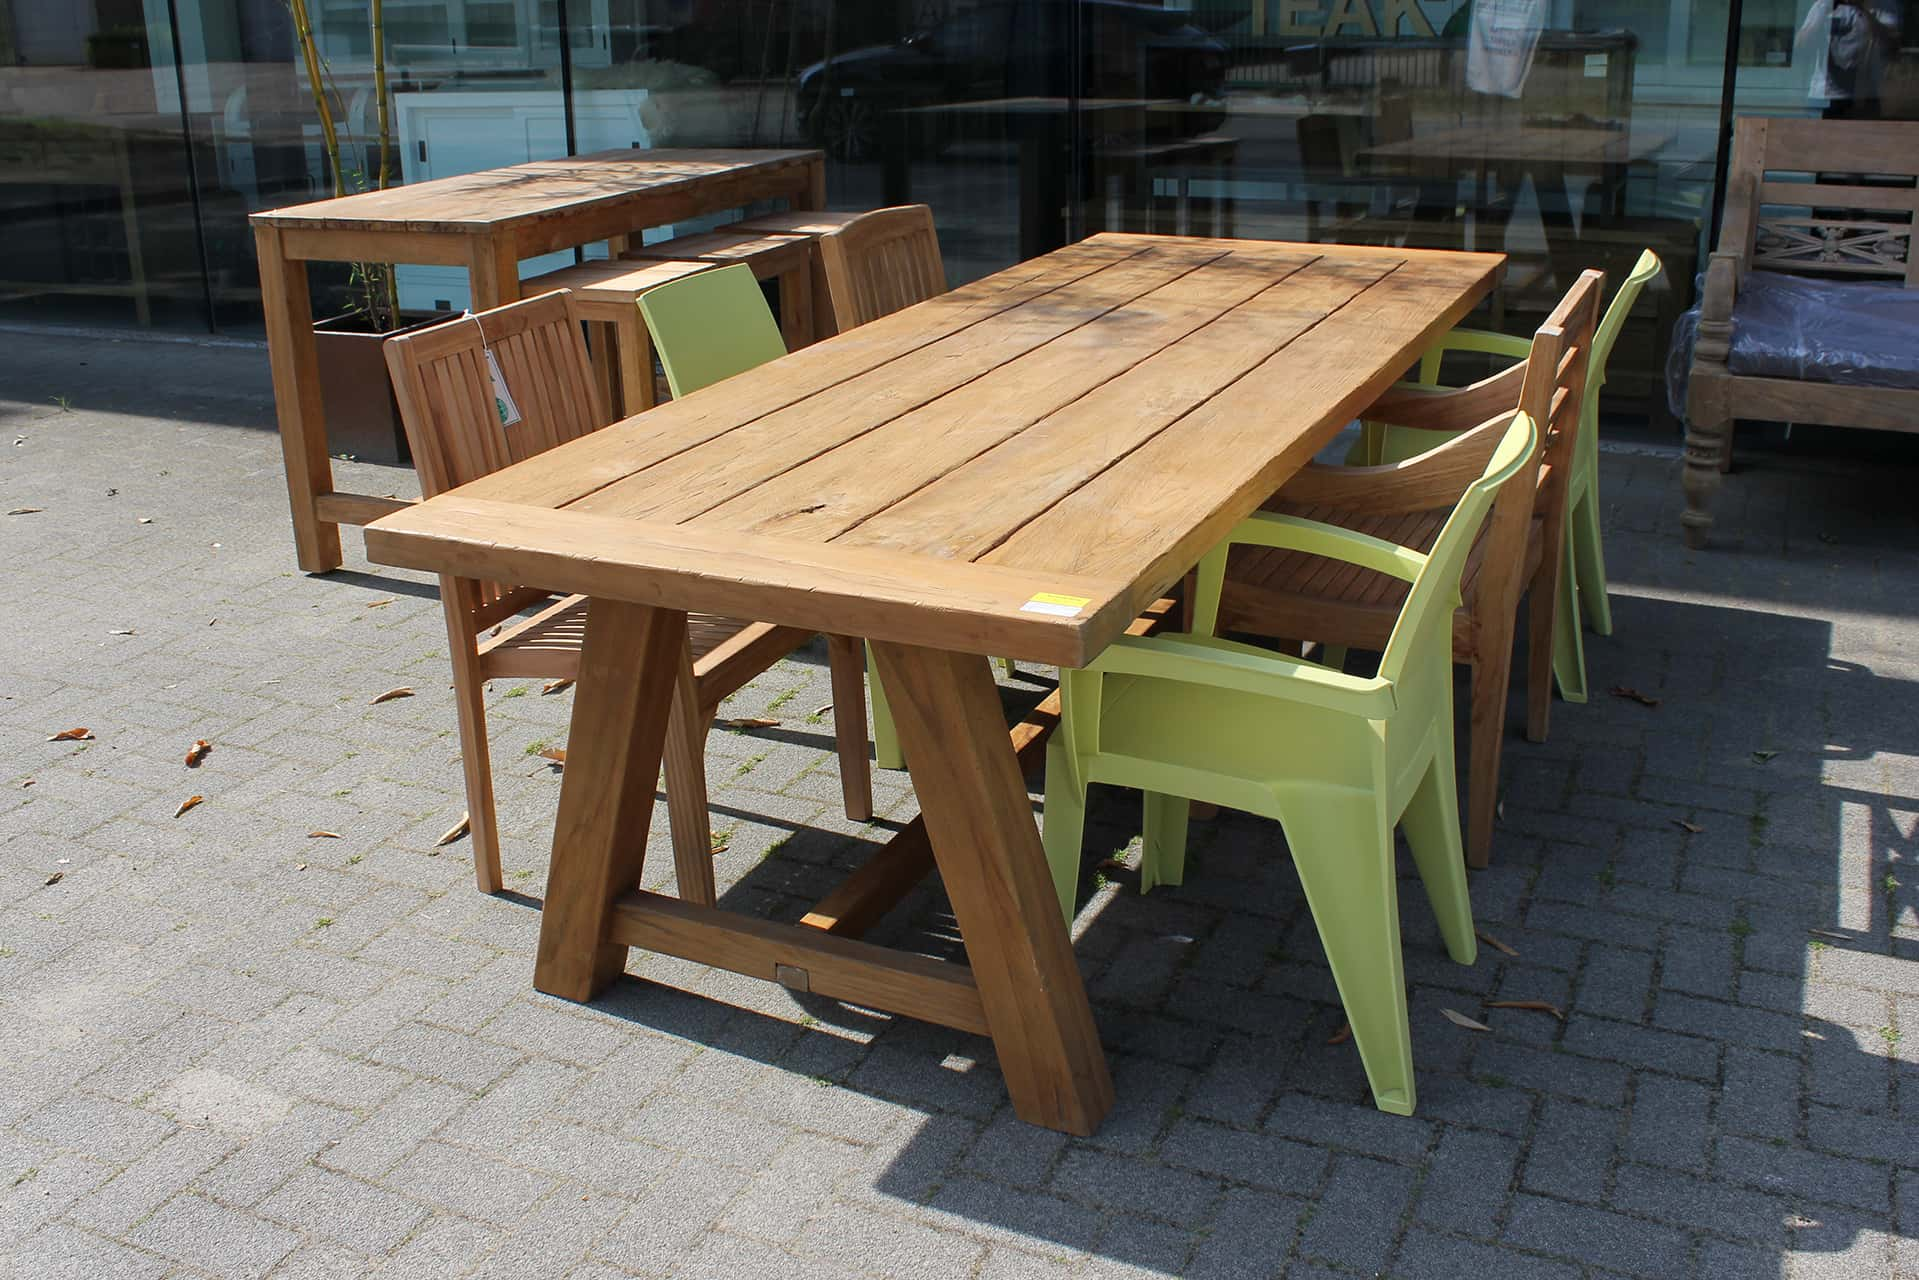 Teak Tangguh O260KTL Old | solid garden table wood with Trapezium legs. Robust teak garden table, garden furniture in high quality.